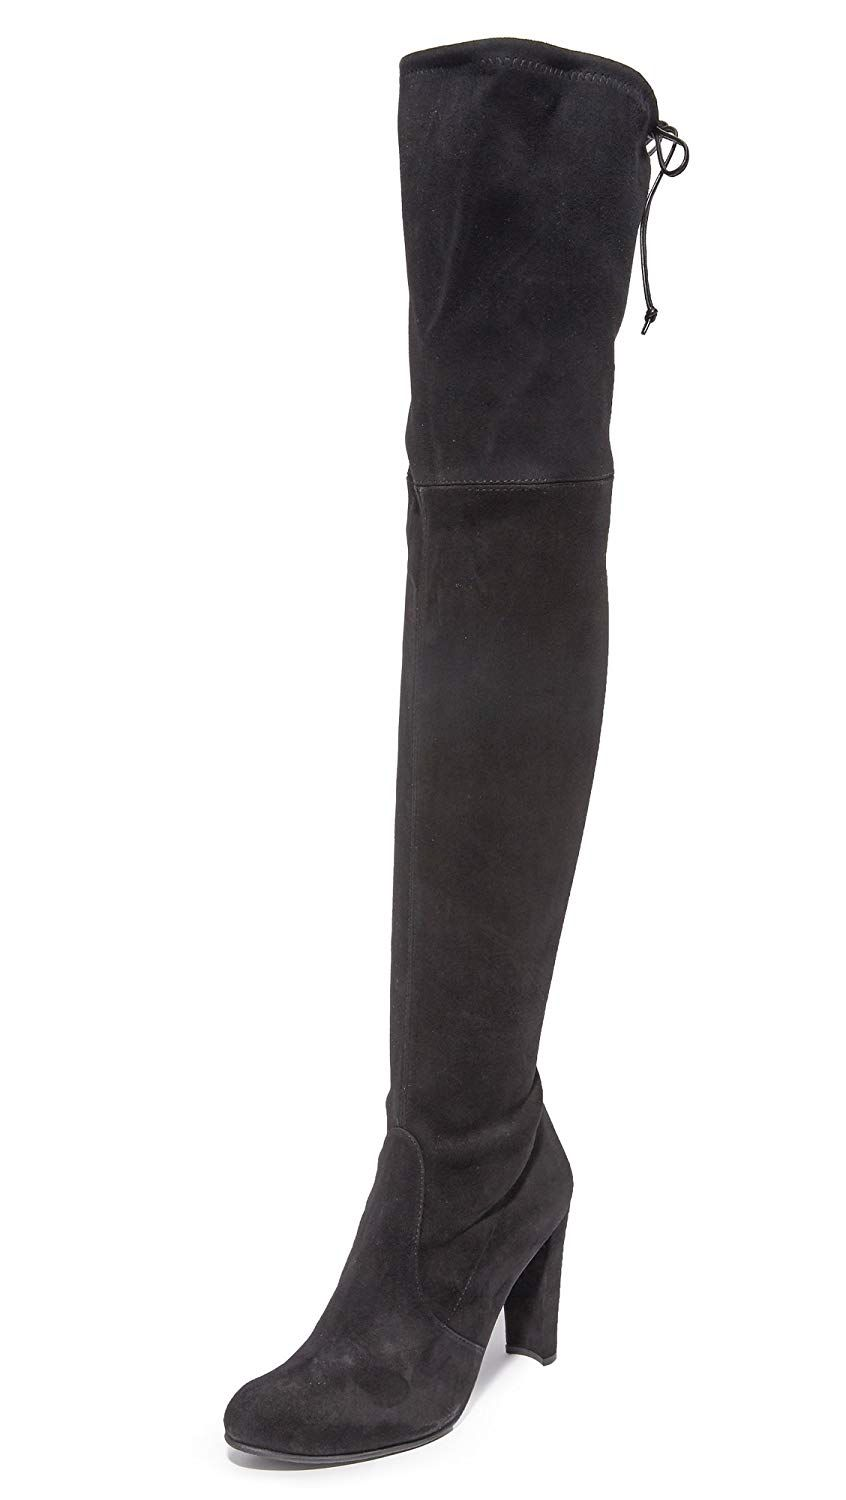 503673ce3d0 Stuart Weitzman Women s Highland Over-the-Knee Boot    Do hope that you  like our photo. (This is our affiliate link)  womensoverthekneeboots